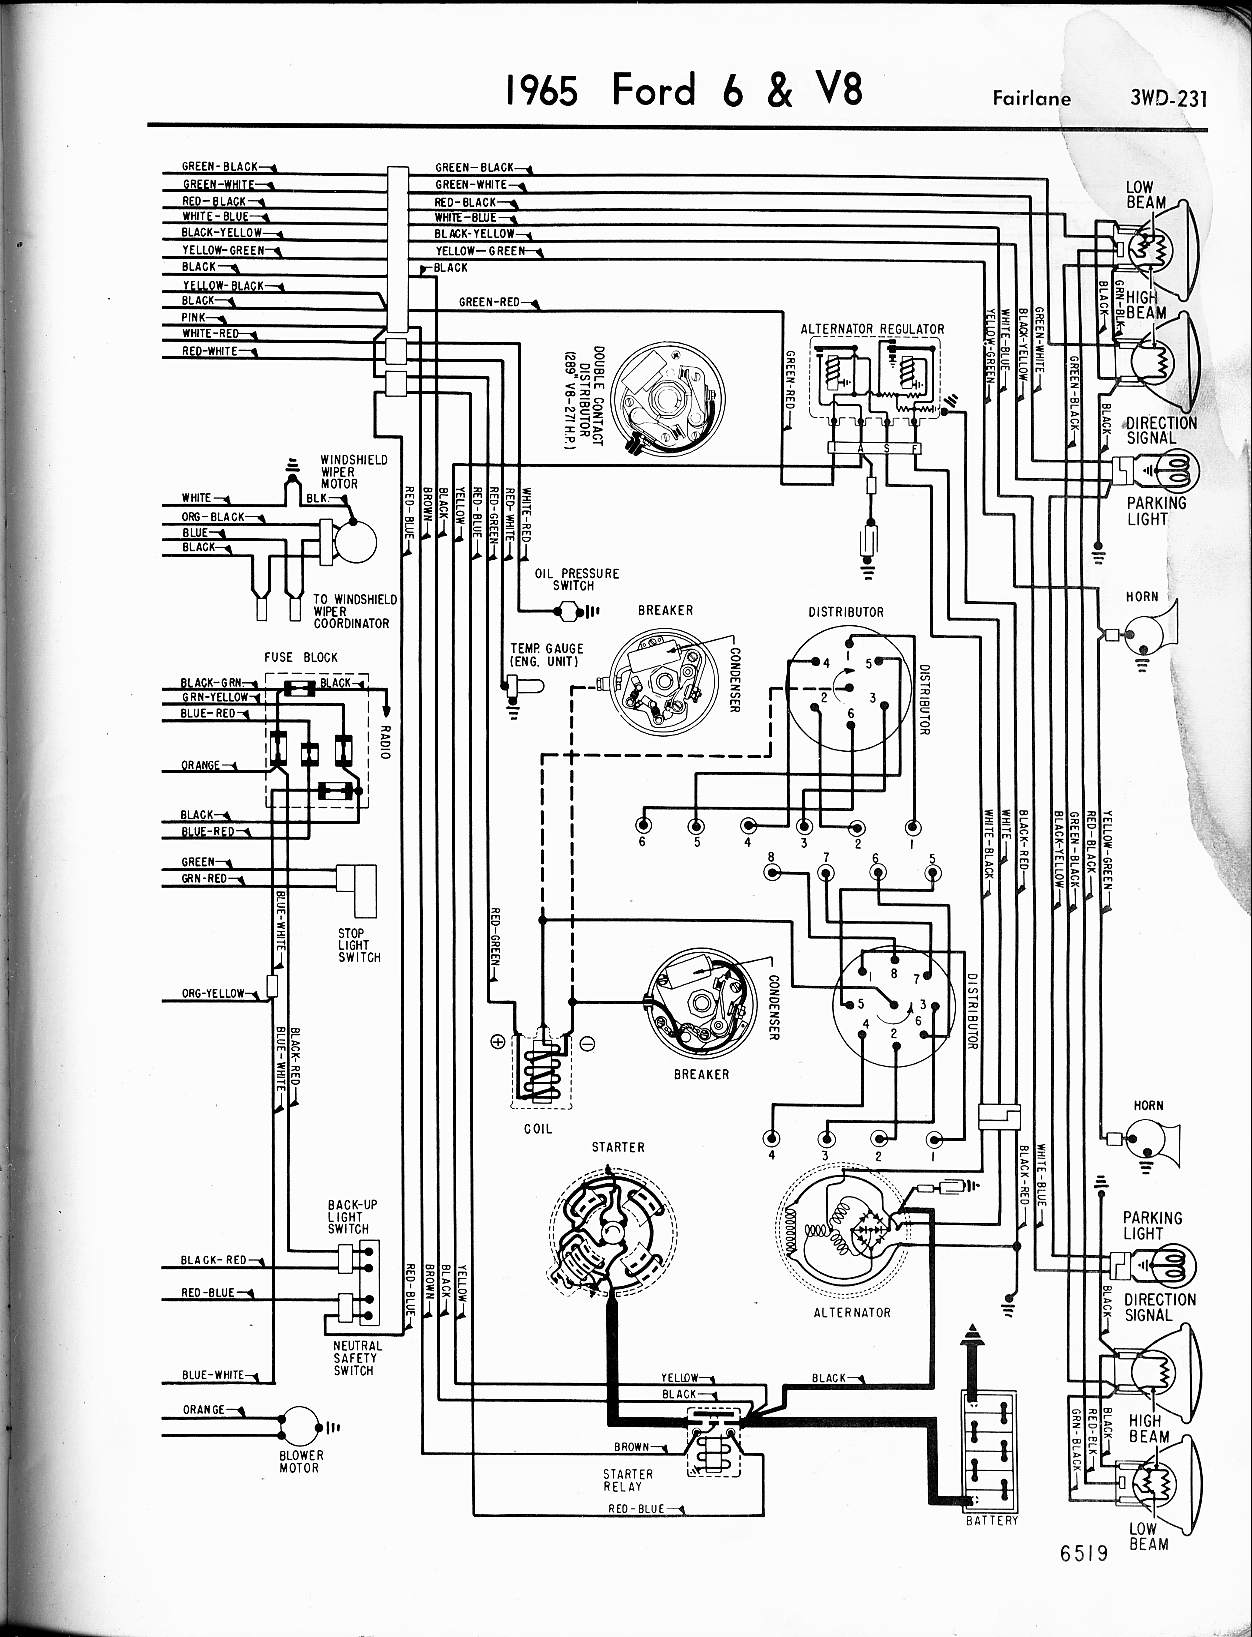 chevy ignition switch wiring chevy image wiring 1957 chevy ignition switch wiring diagram 1957 discover your on chevy ignition switch wiring